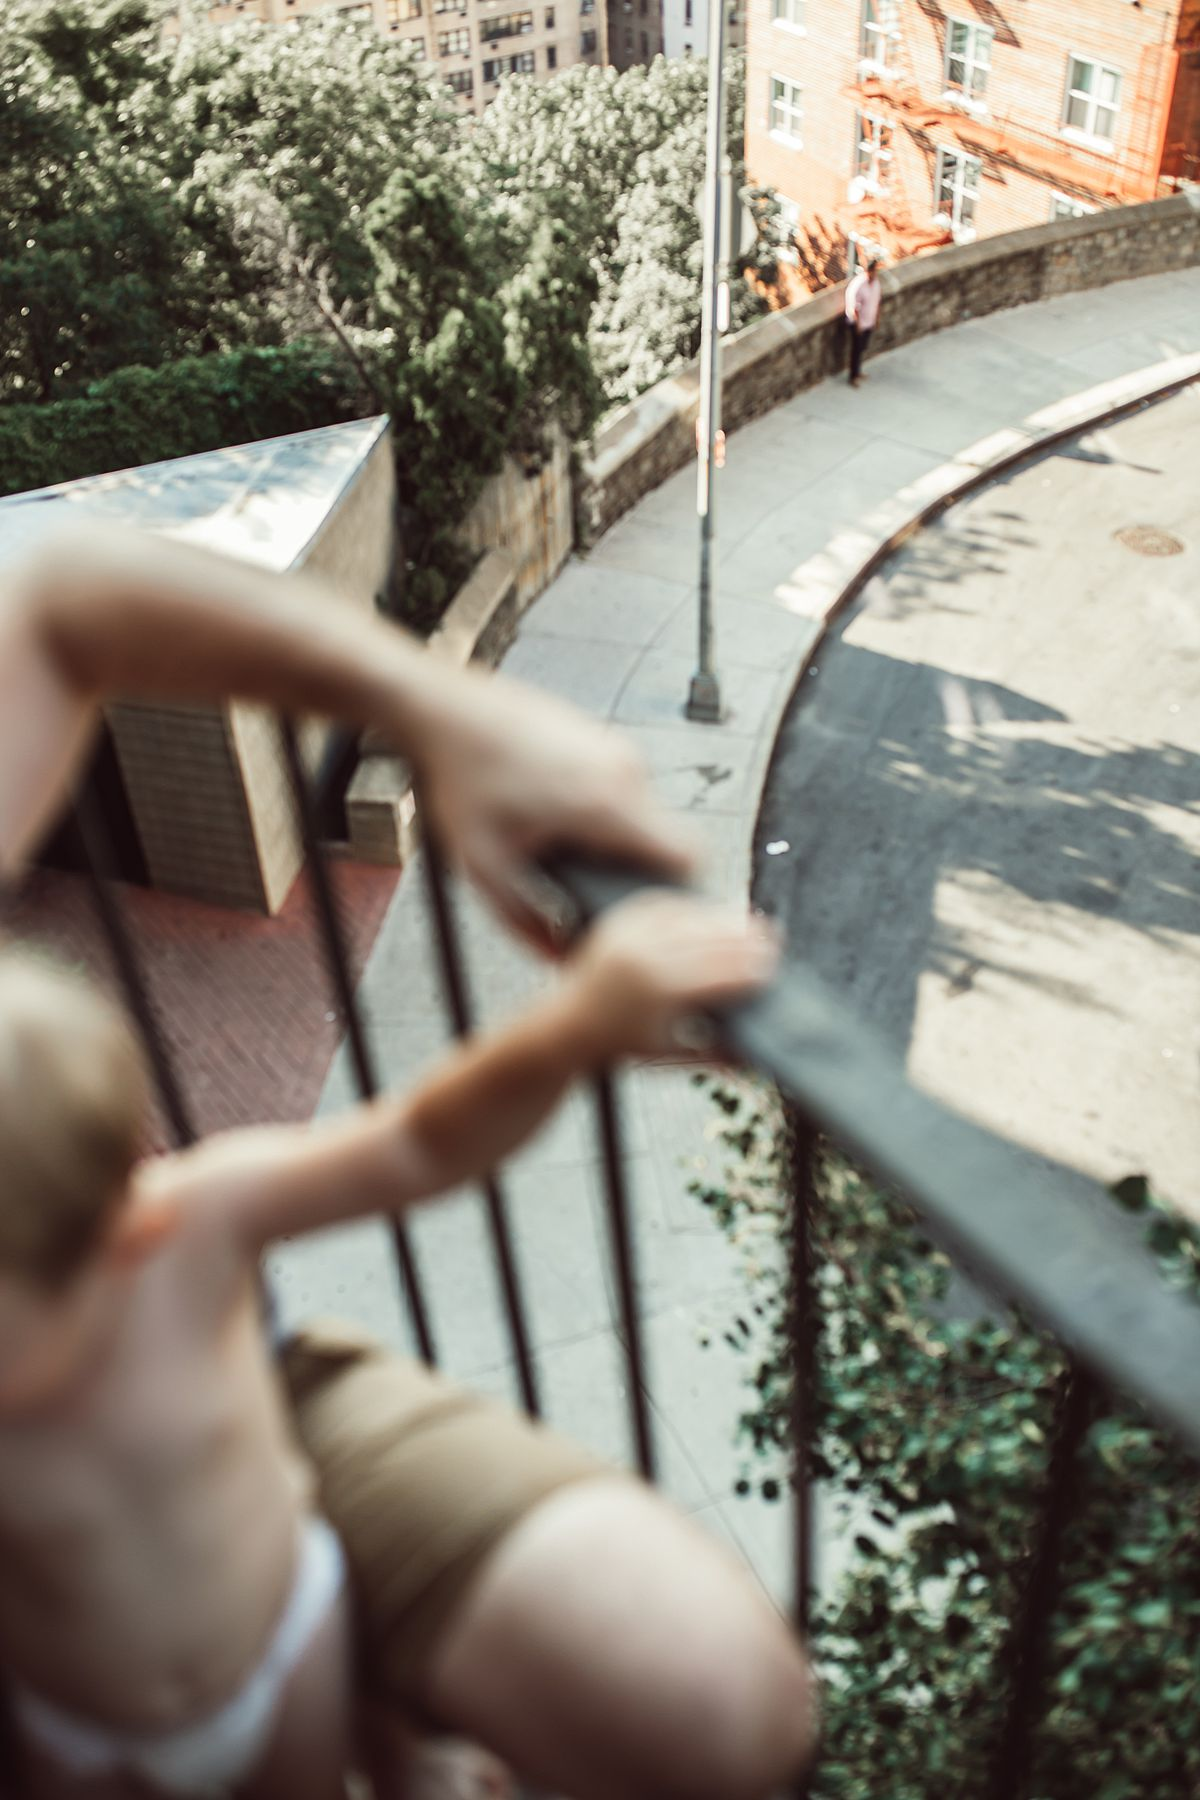 blurred detail shot of dad and son's hands holding railing on their nyc fire escape. image by photographer krystil mcdowall